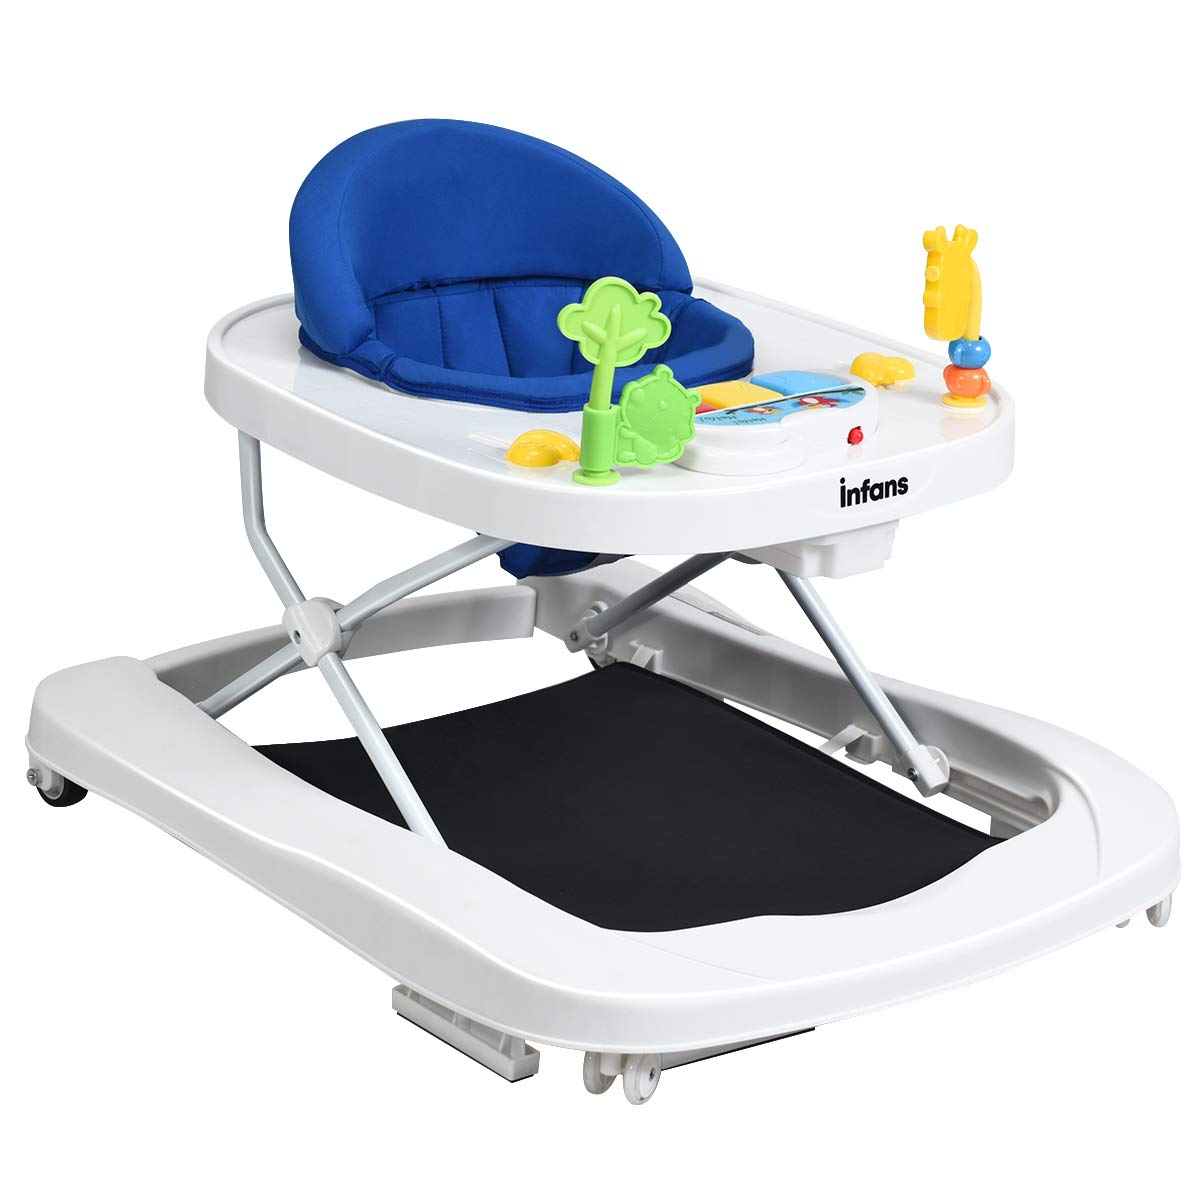 INFANS Foldable Baby Walker, 3 in 1 Toddler Walker Bouncer, Learning-Seated, Walk-Behind, Music, Adjustable Height, High Back Padded Seat, Detachable Trampoline Mat, Activity Walker with Toys, Blue